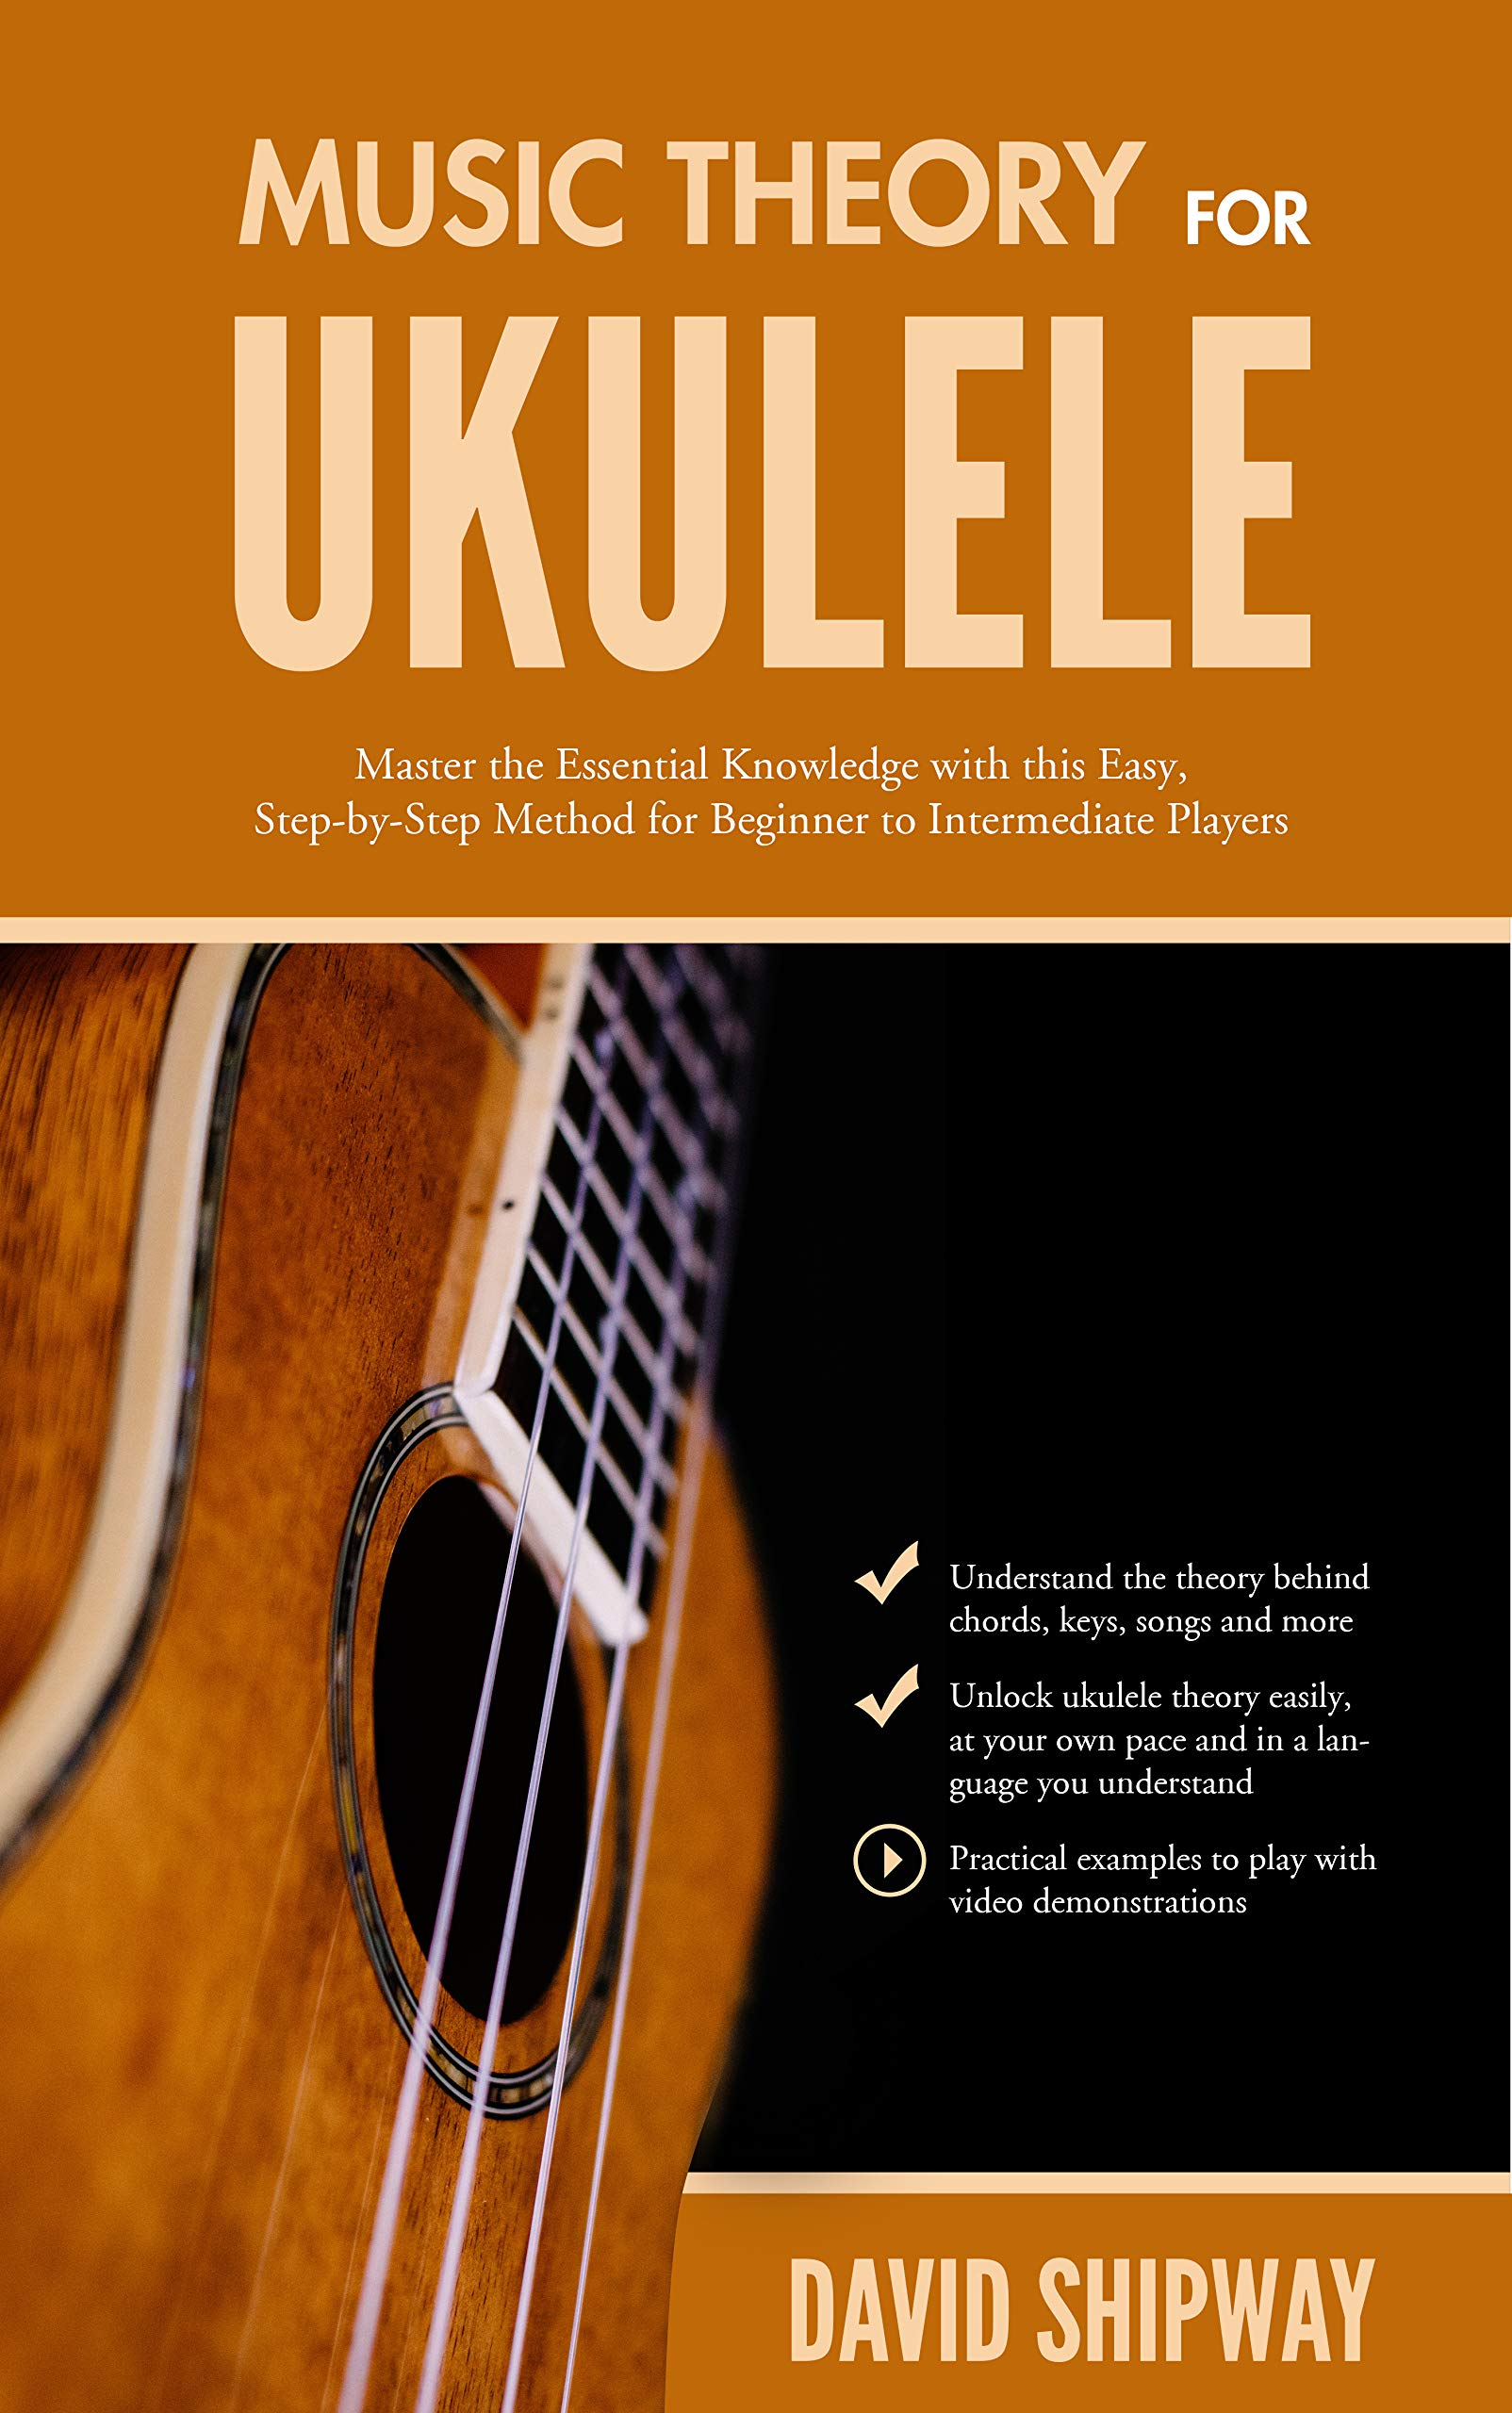 Music Theory for Ukulele: Master the Essential Knowledge with this Easy, Step-by-Step Method for Beginner to Intermediate Players